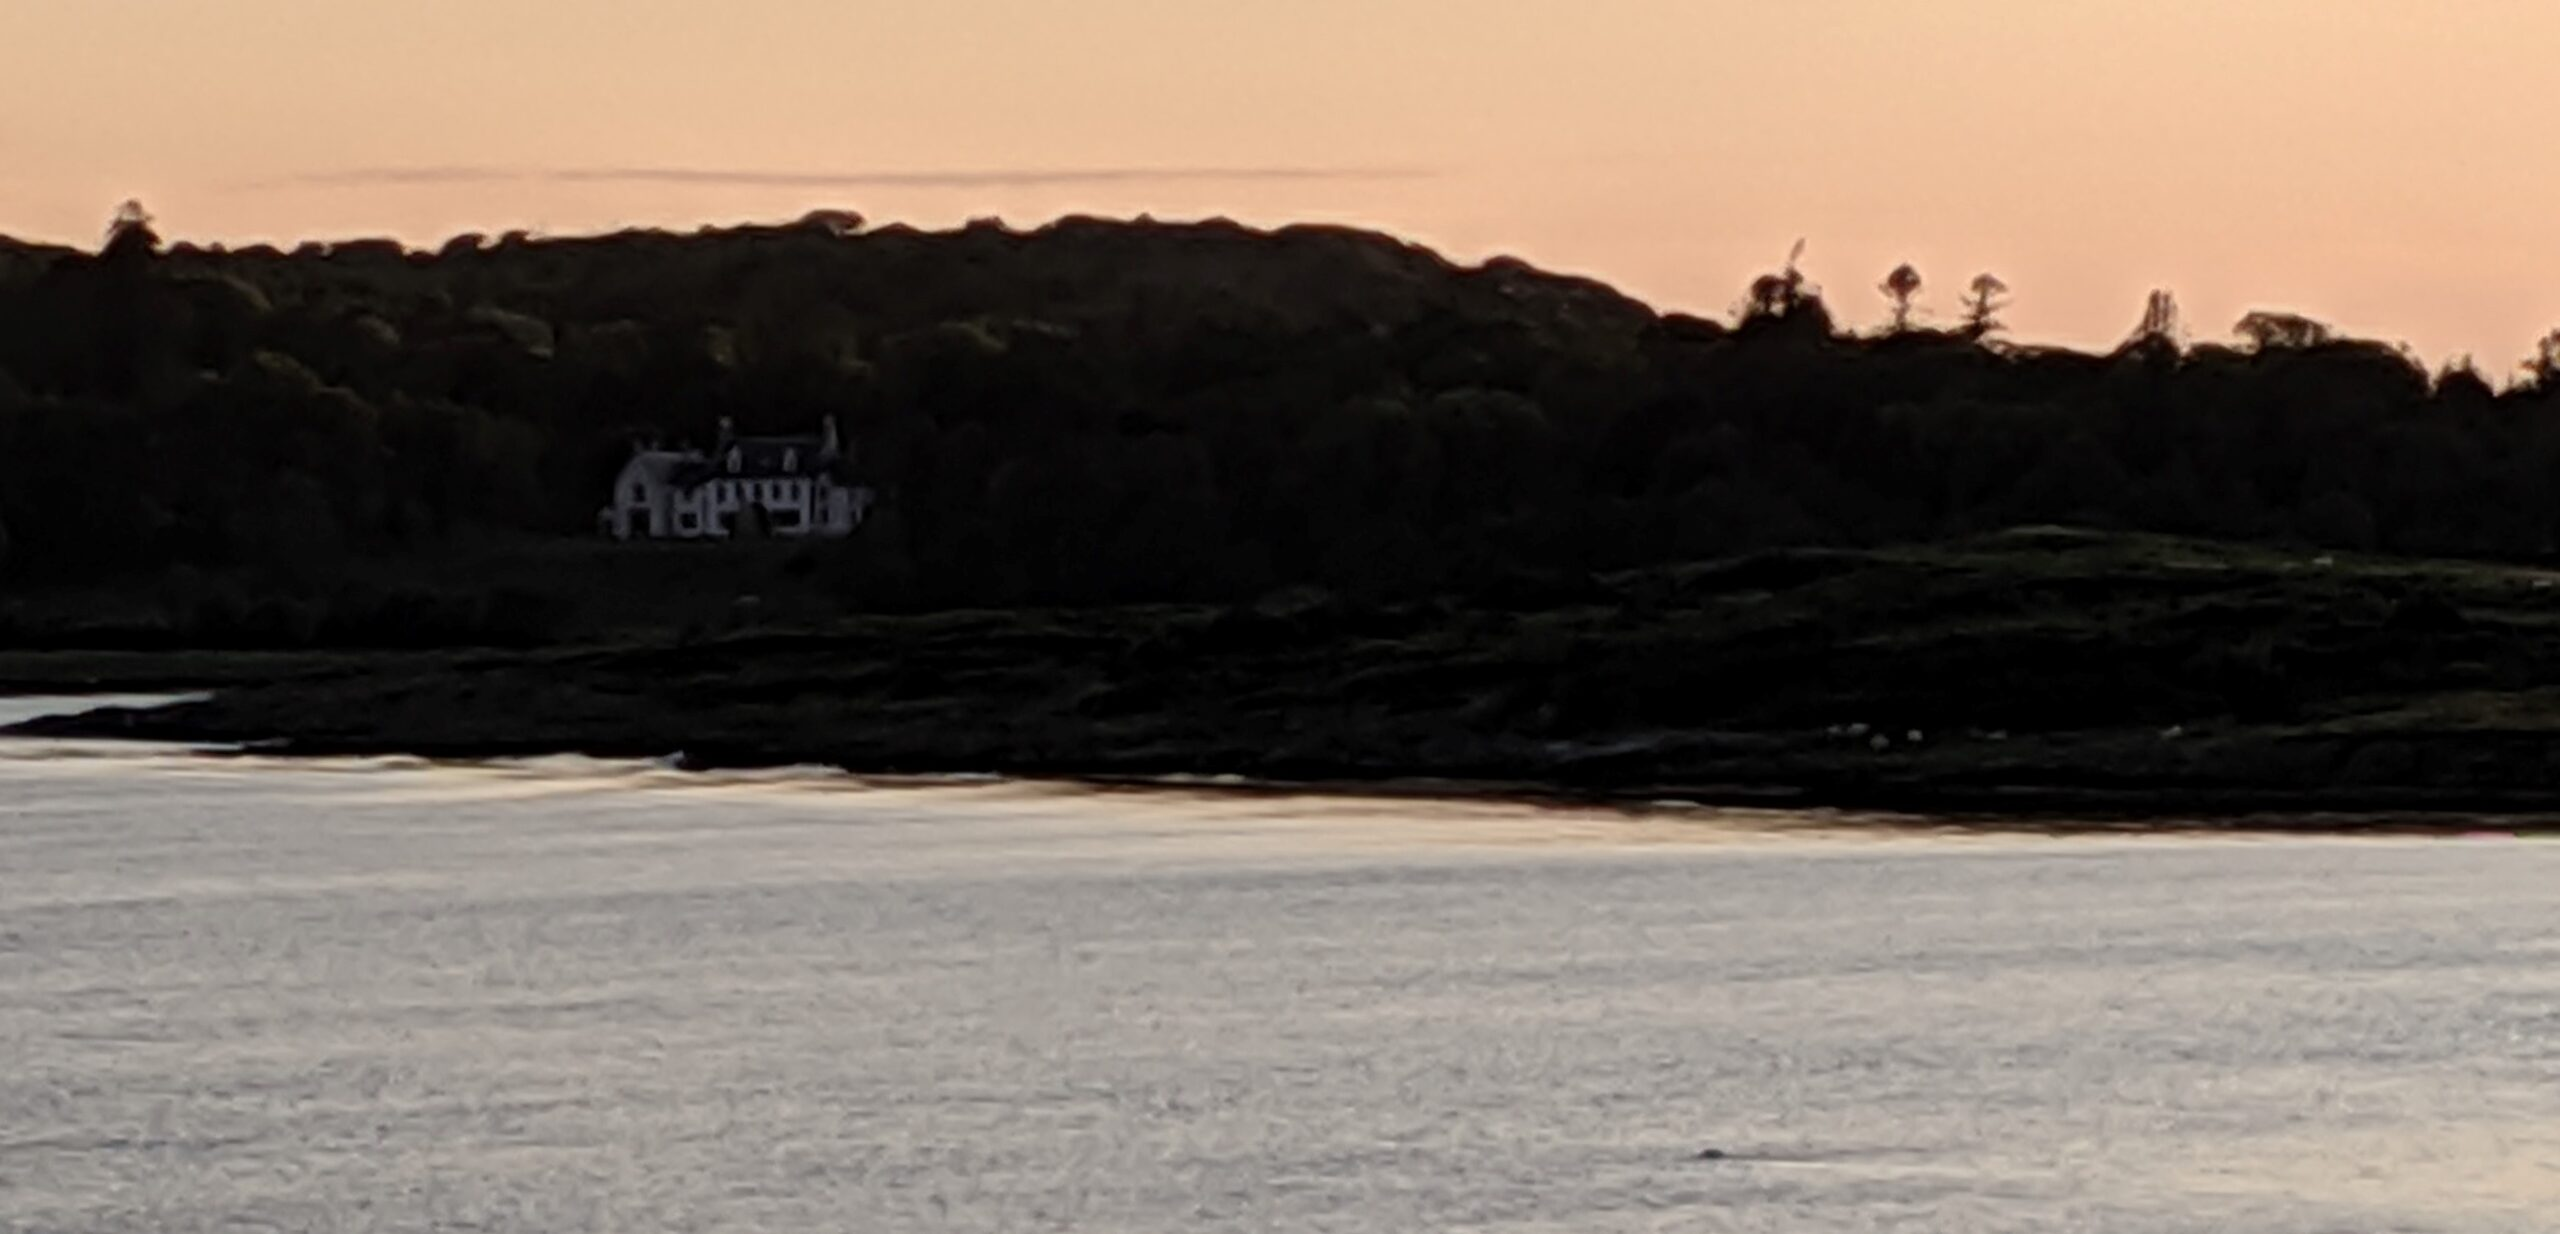 Laird Campbells white home on a dark shore with sunset colors in the sky